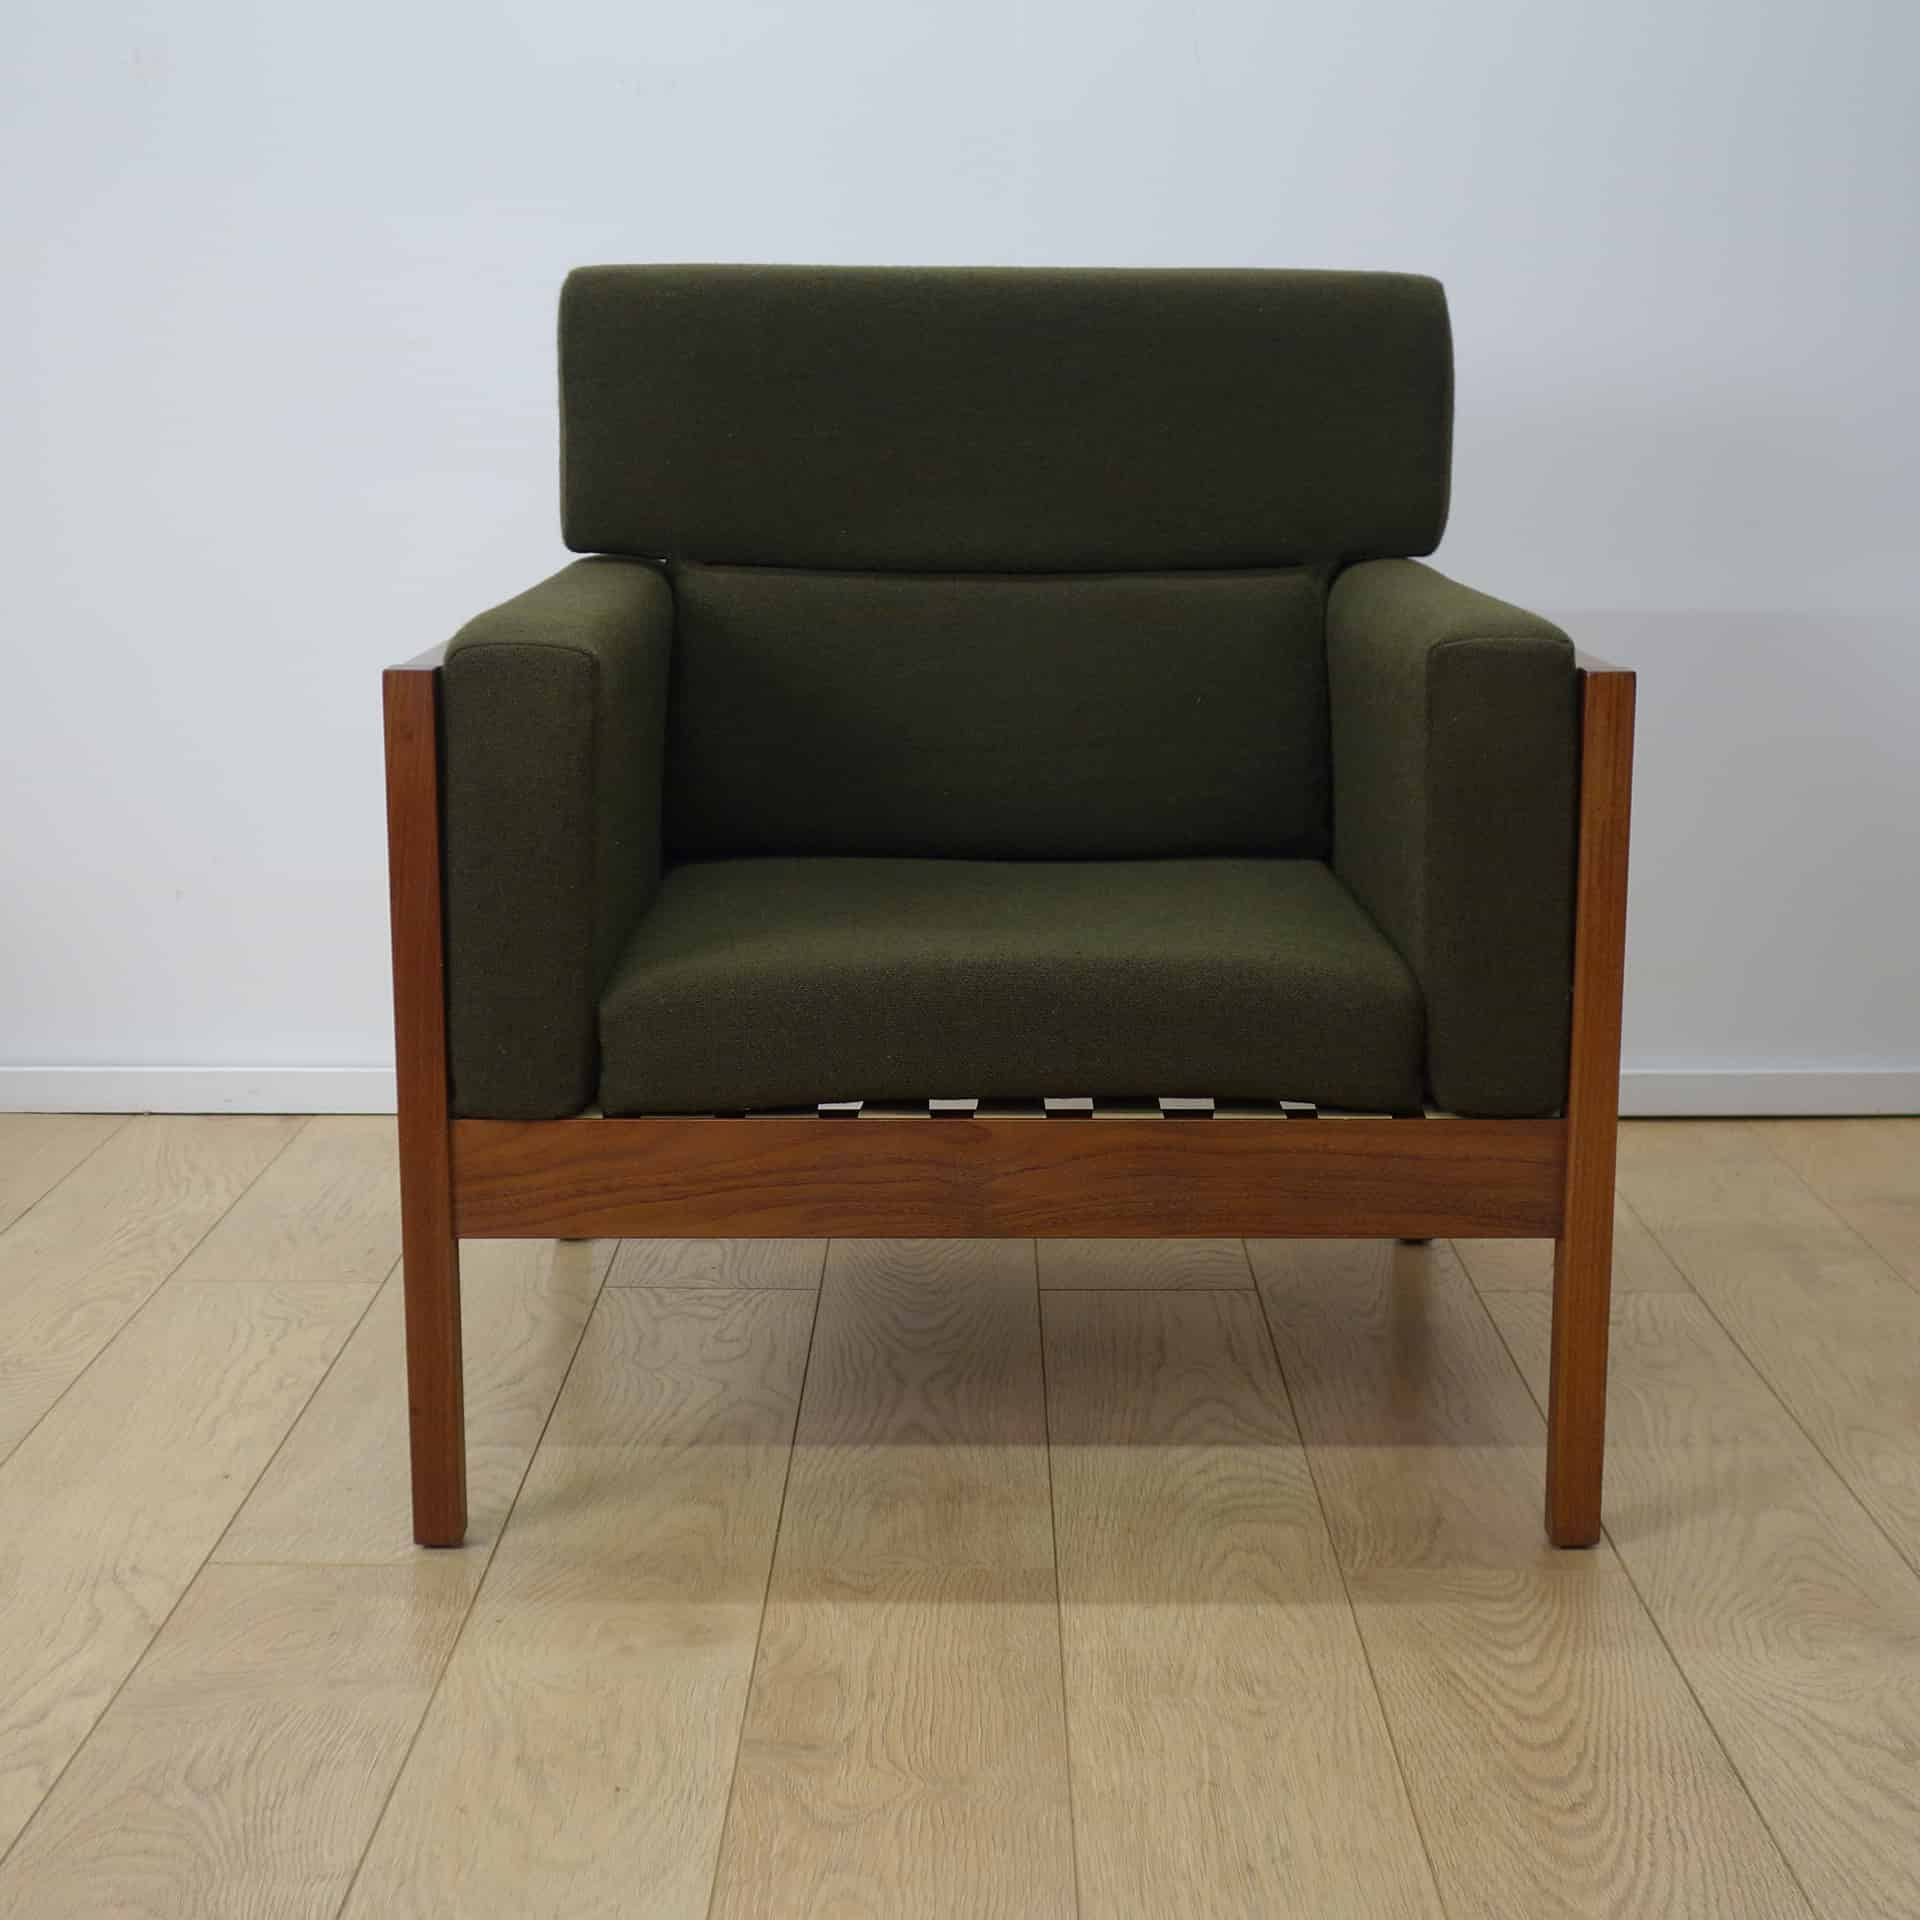 3 Seater Sofa Amp 2 Chairs By Guy Rogers Mark Parrish Mid